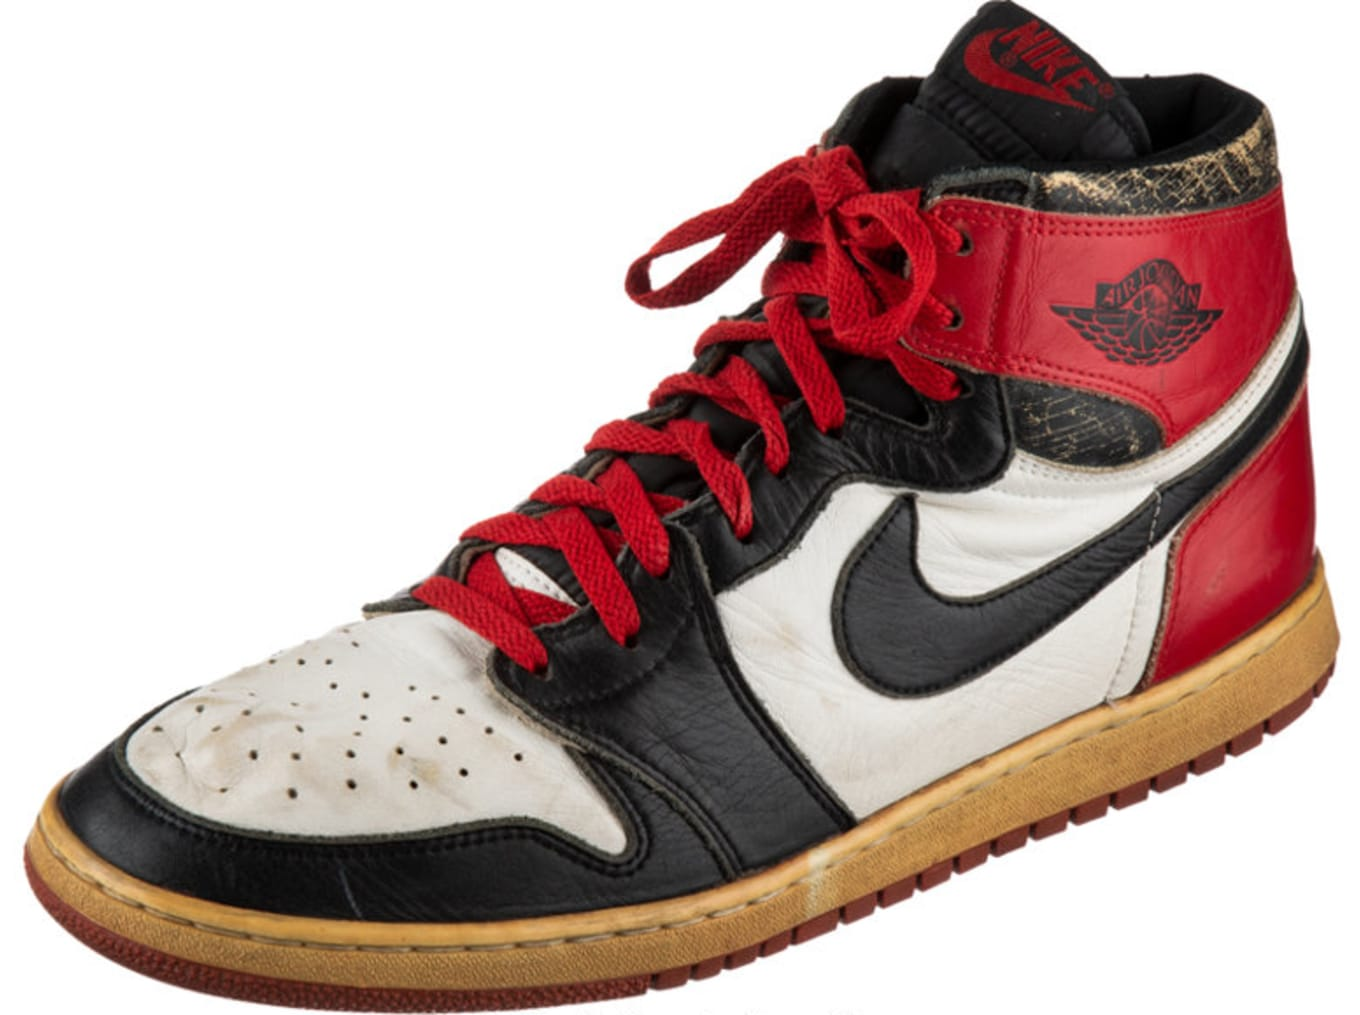 dedb4df747b4 Your Chance to Own One of Michael Jordan s Game-Worn Air Jordan 1s.  Black  Toes  ...